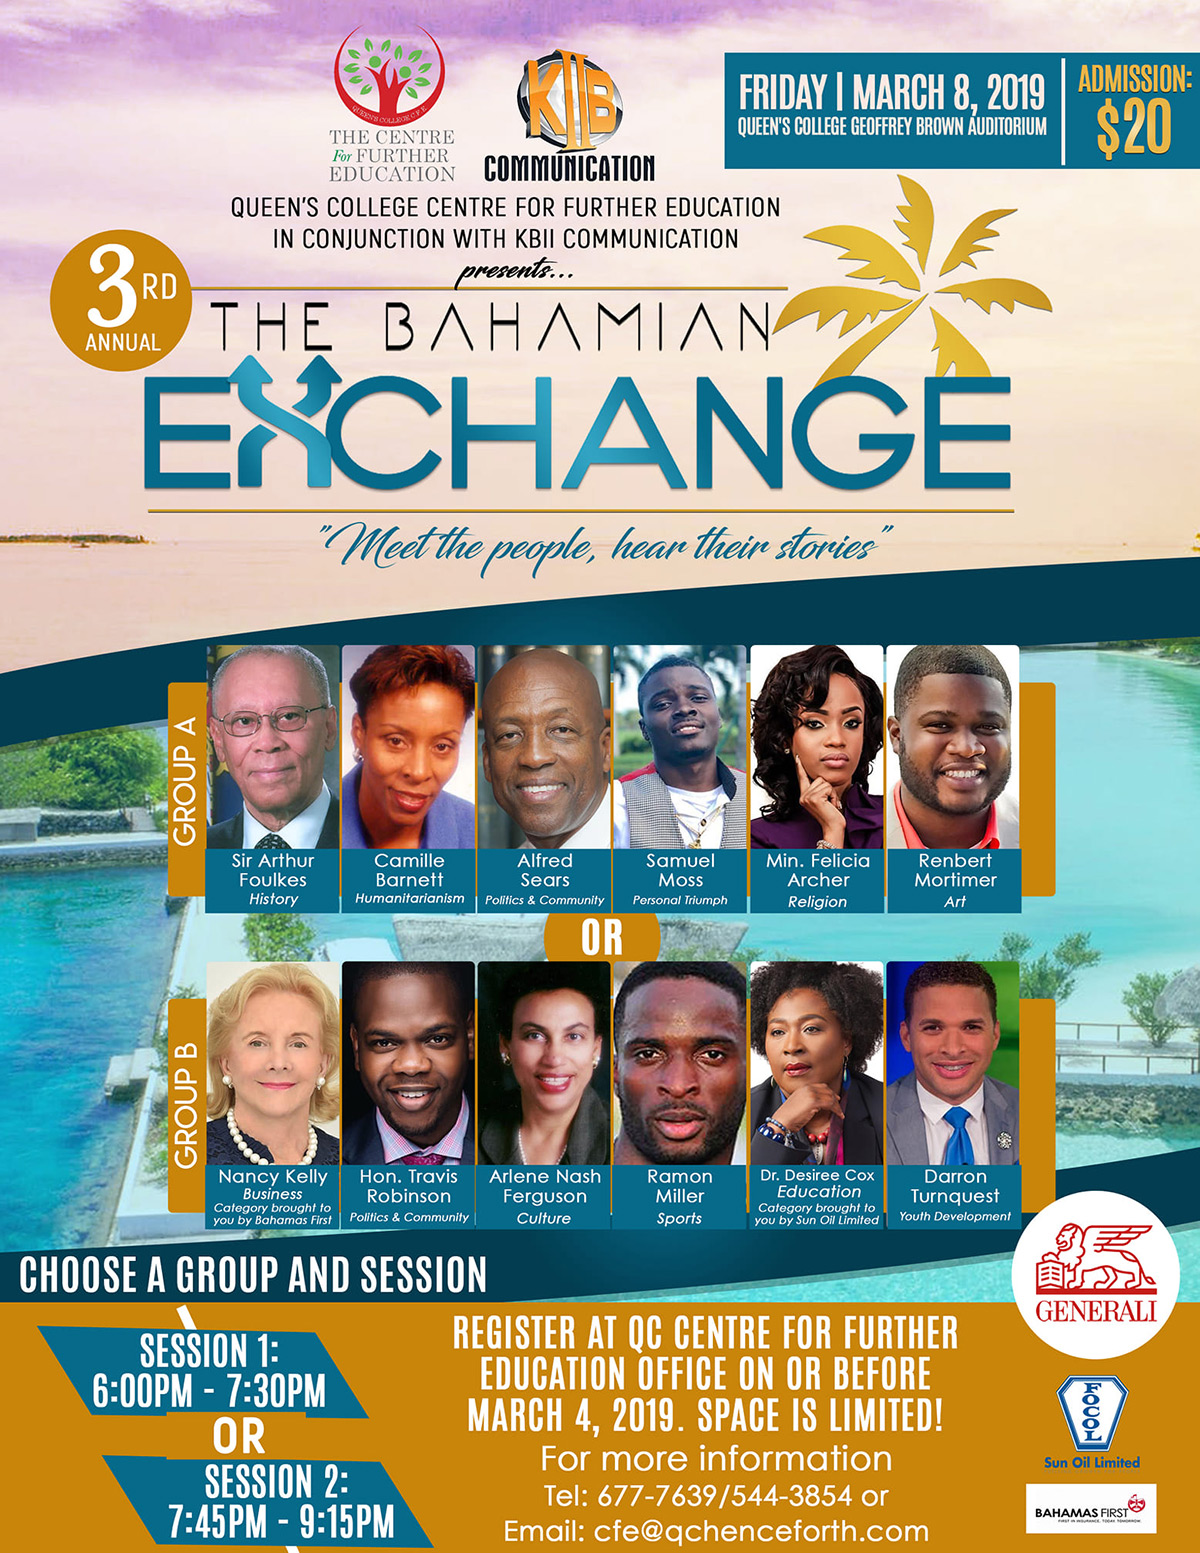 3rd Annual Bahamian Exchange